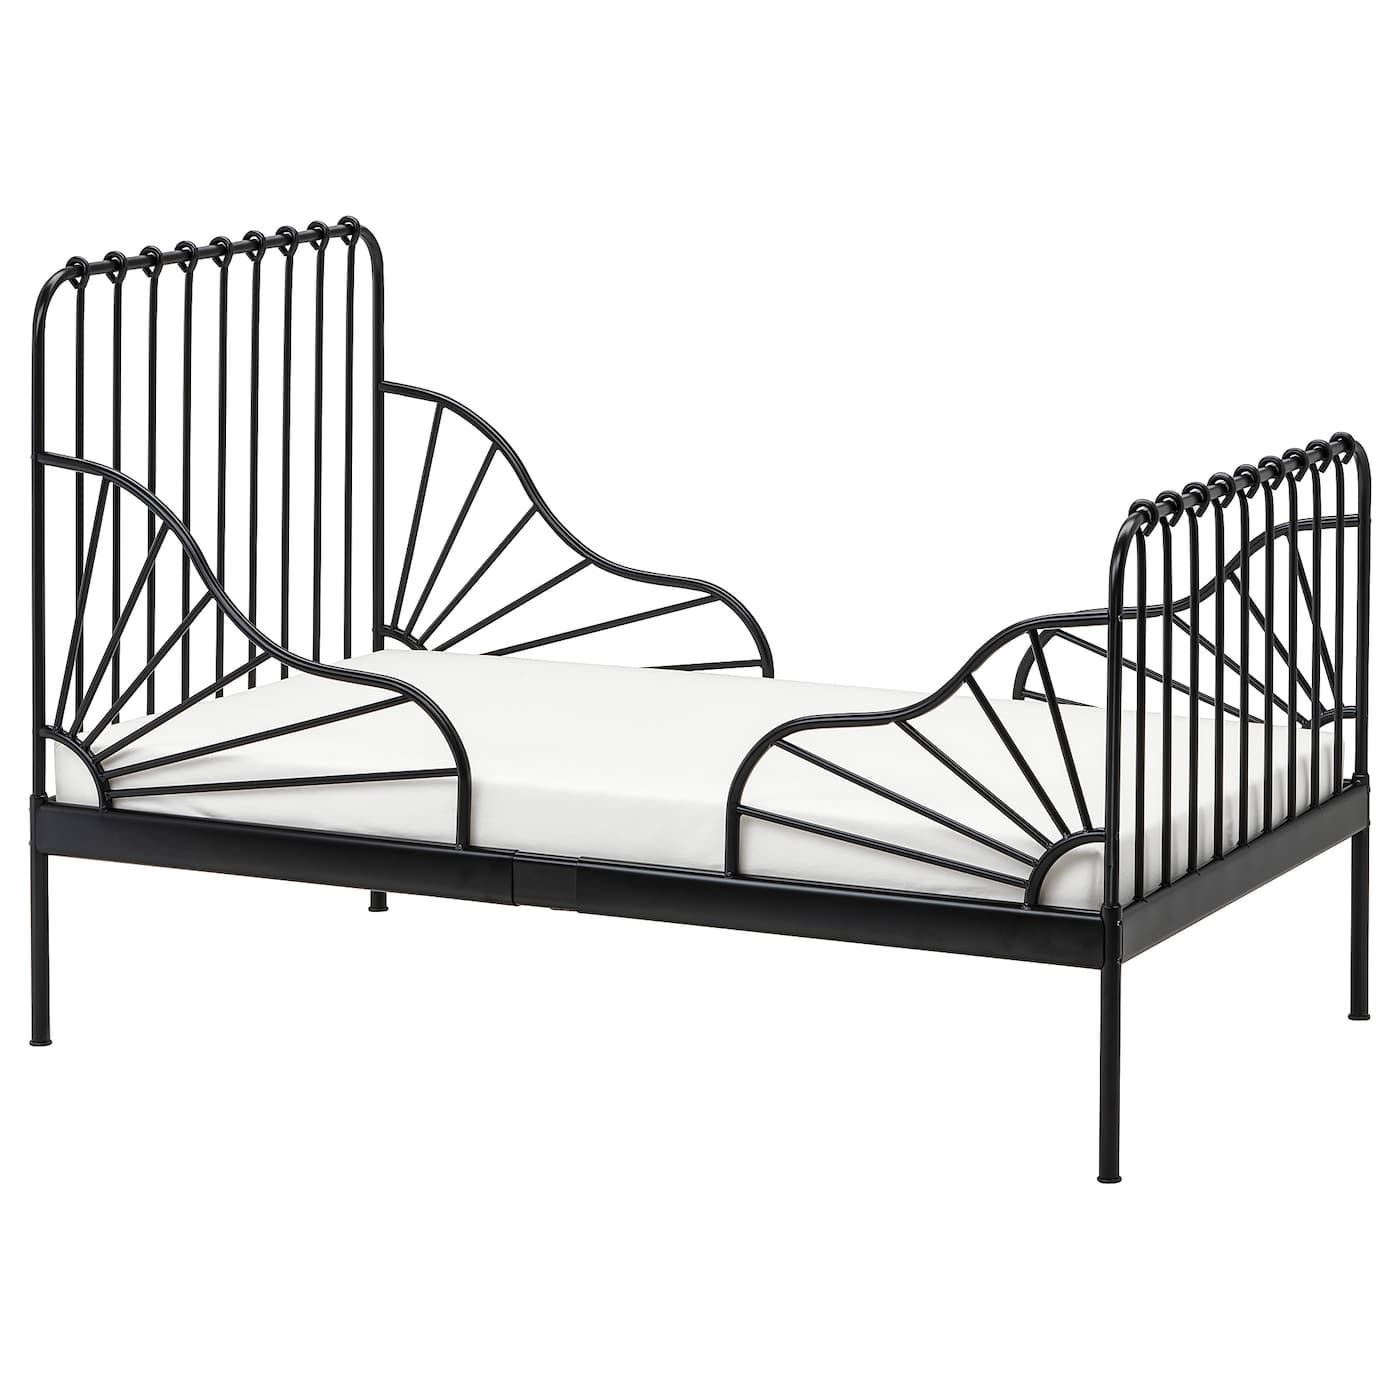 Minnen Ext Bed Frame With Slatted Bed Base Black 38 1 4x74 3 4